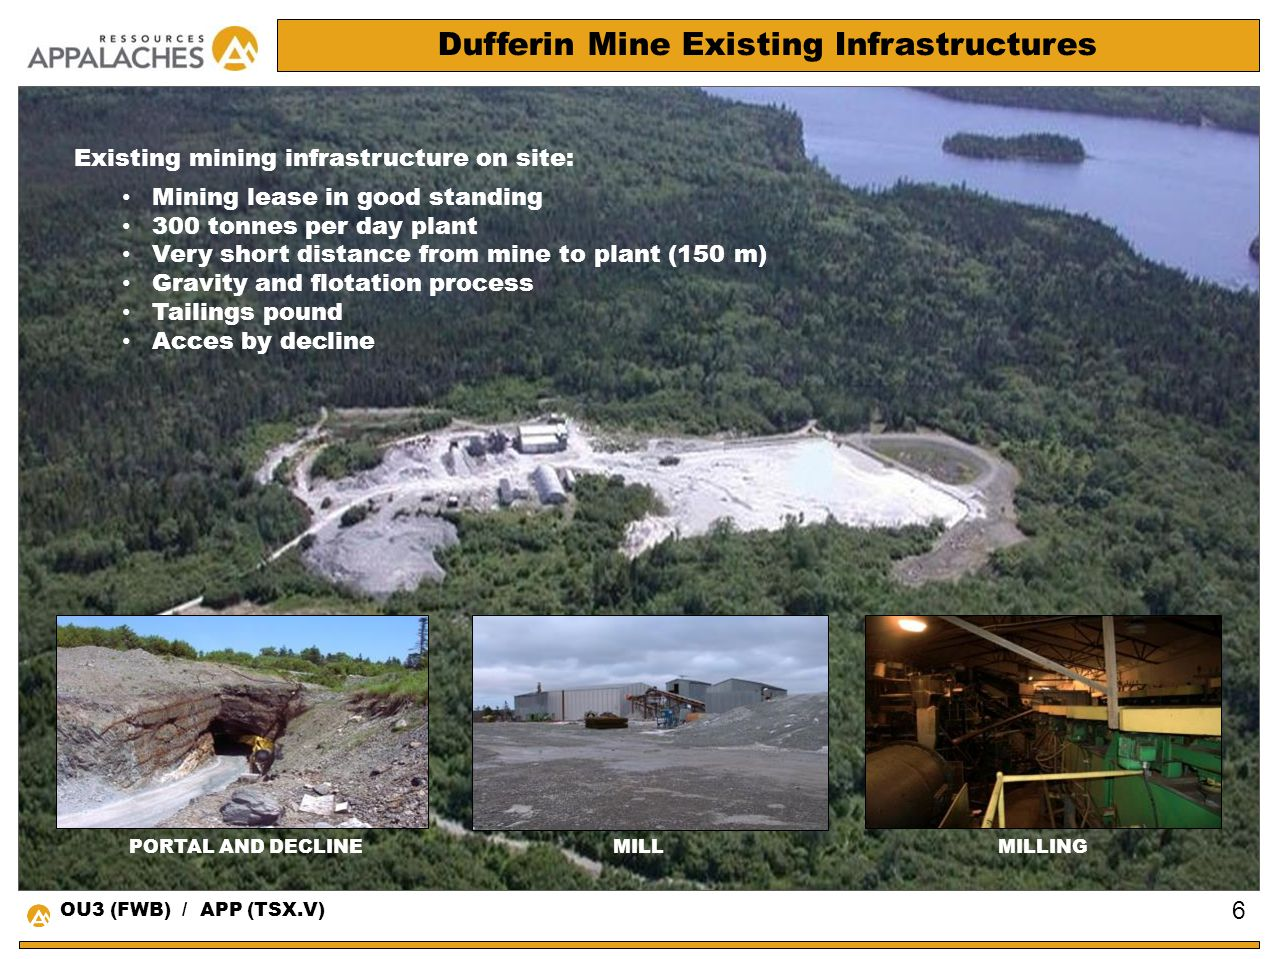 Dufferin Mine Existing Infrastructures